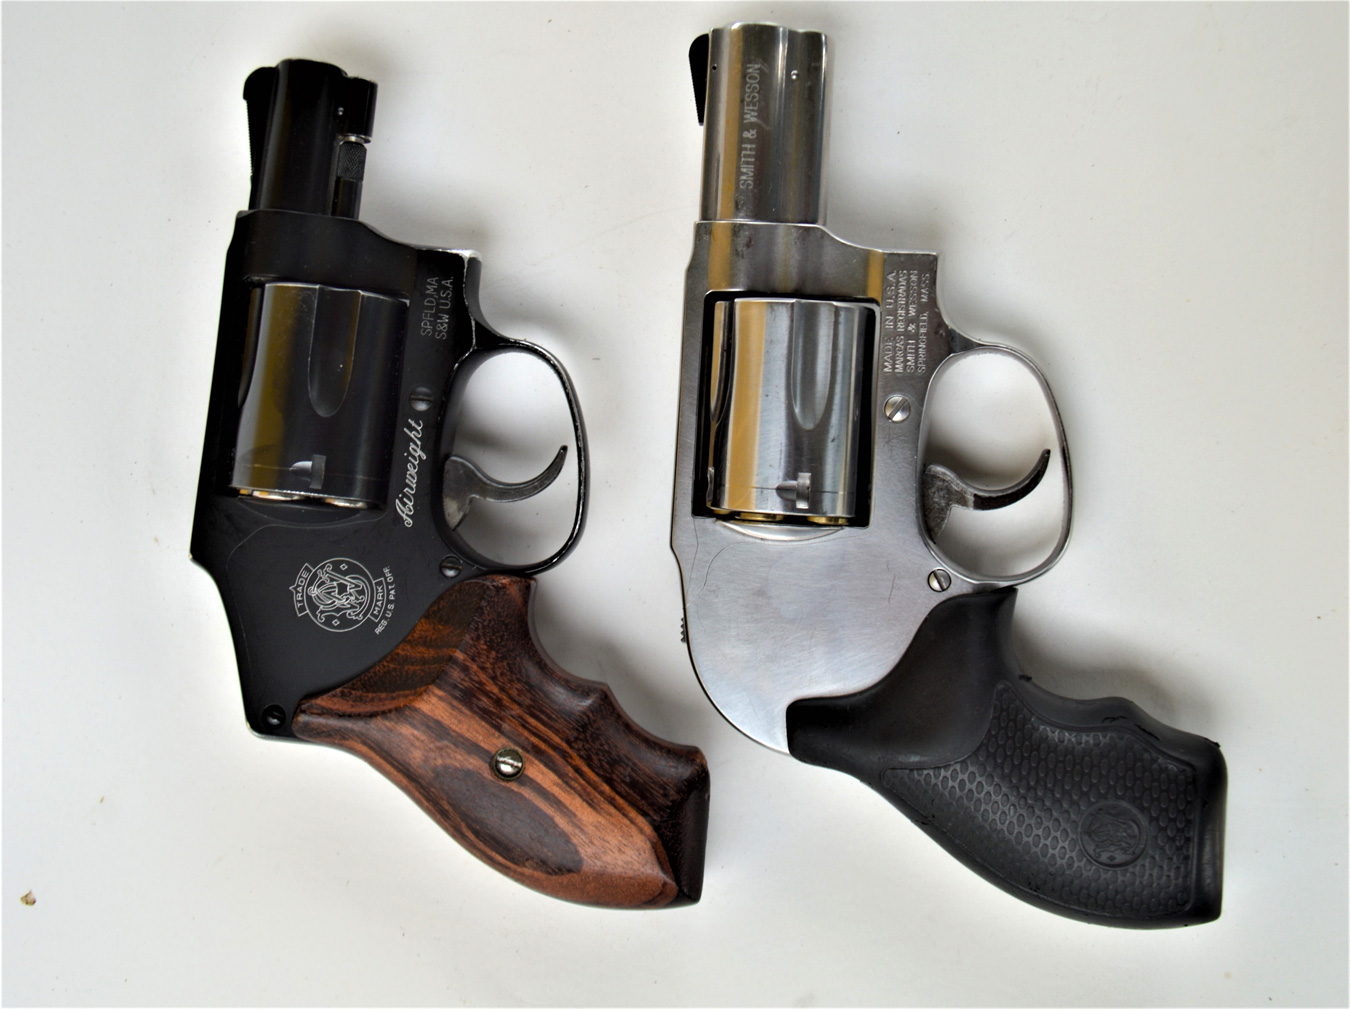 Smith and Wesson 649 .357 Magnum right Smith and Wesson 649 left